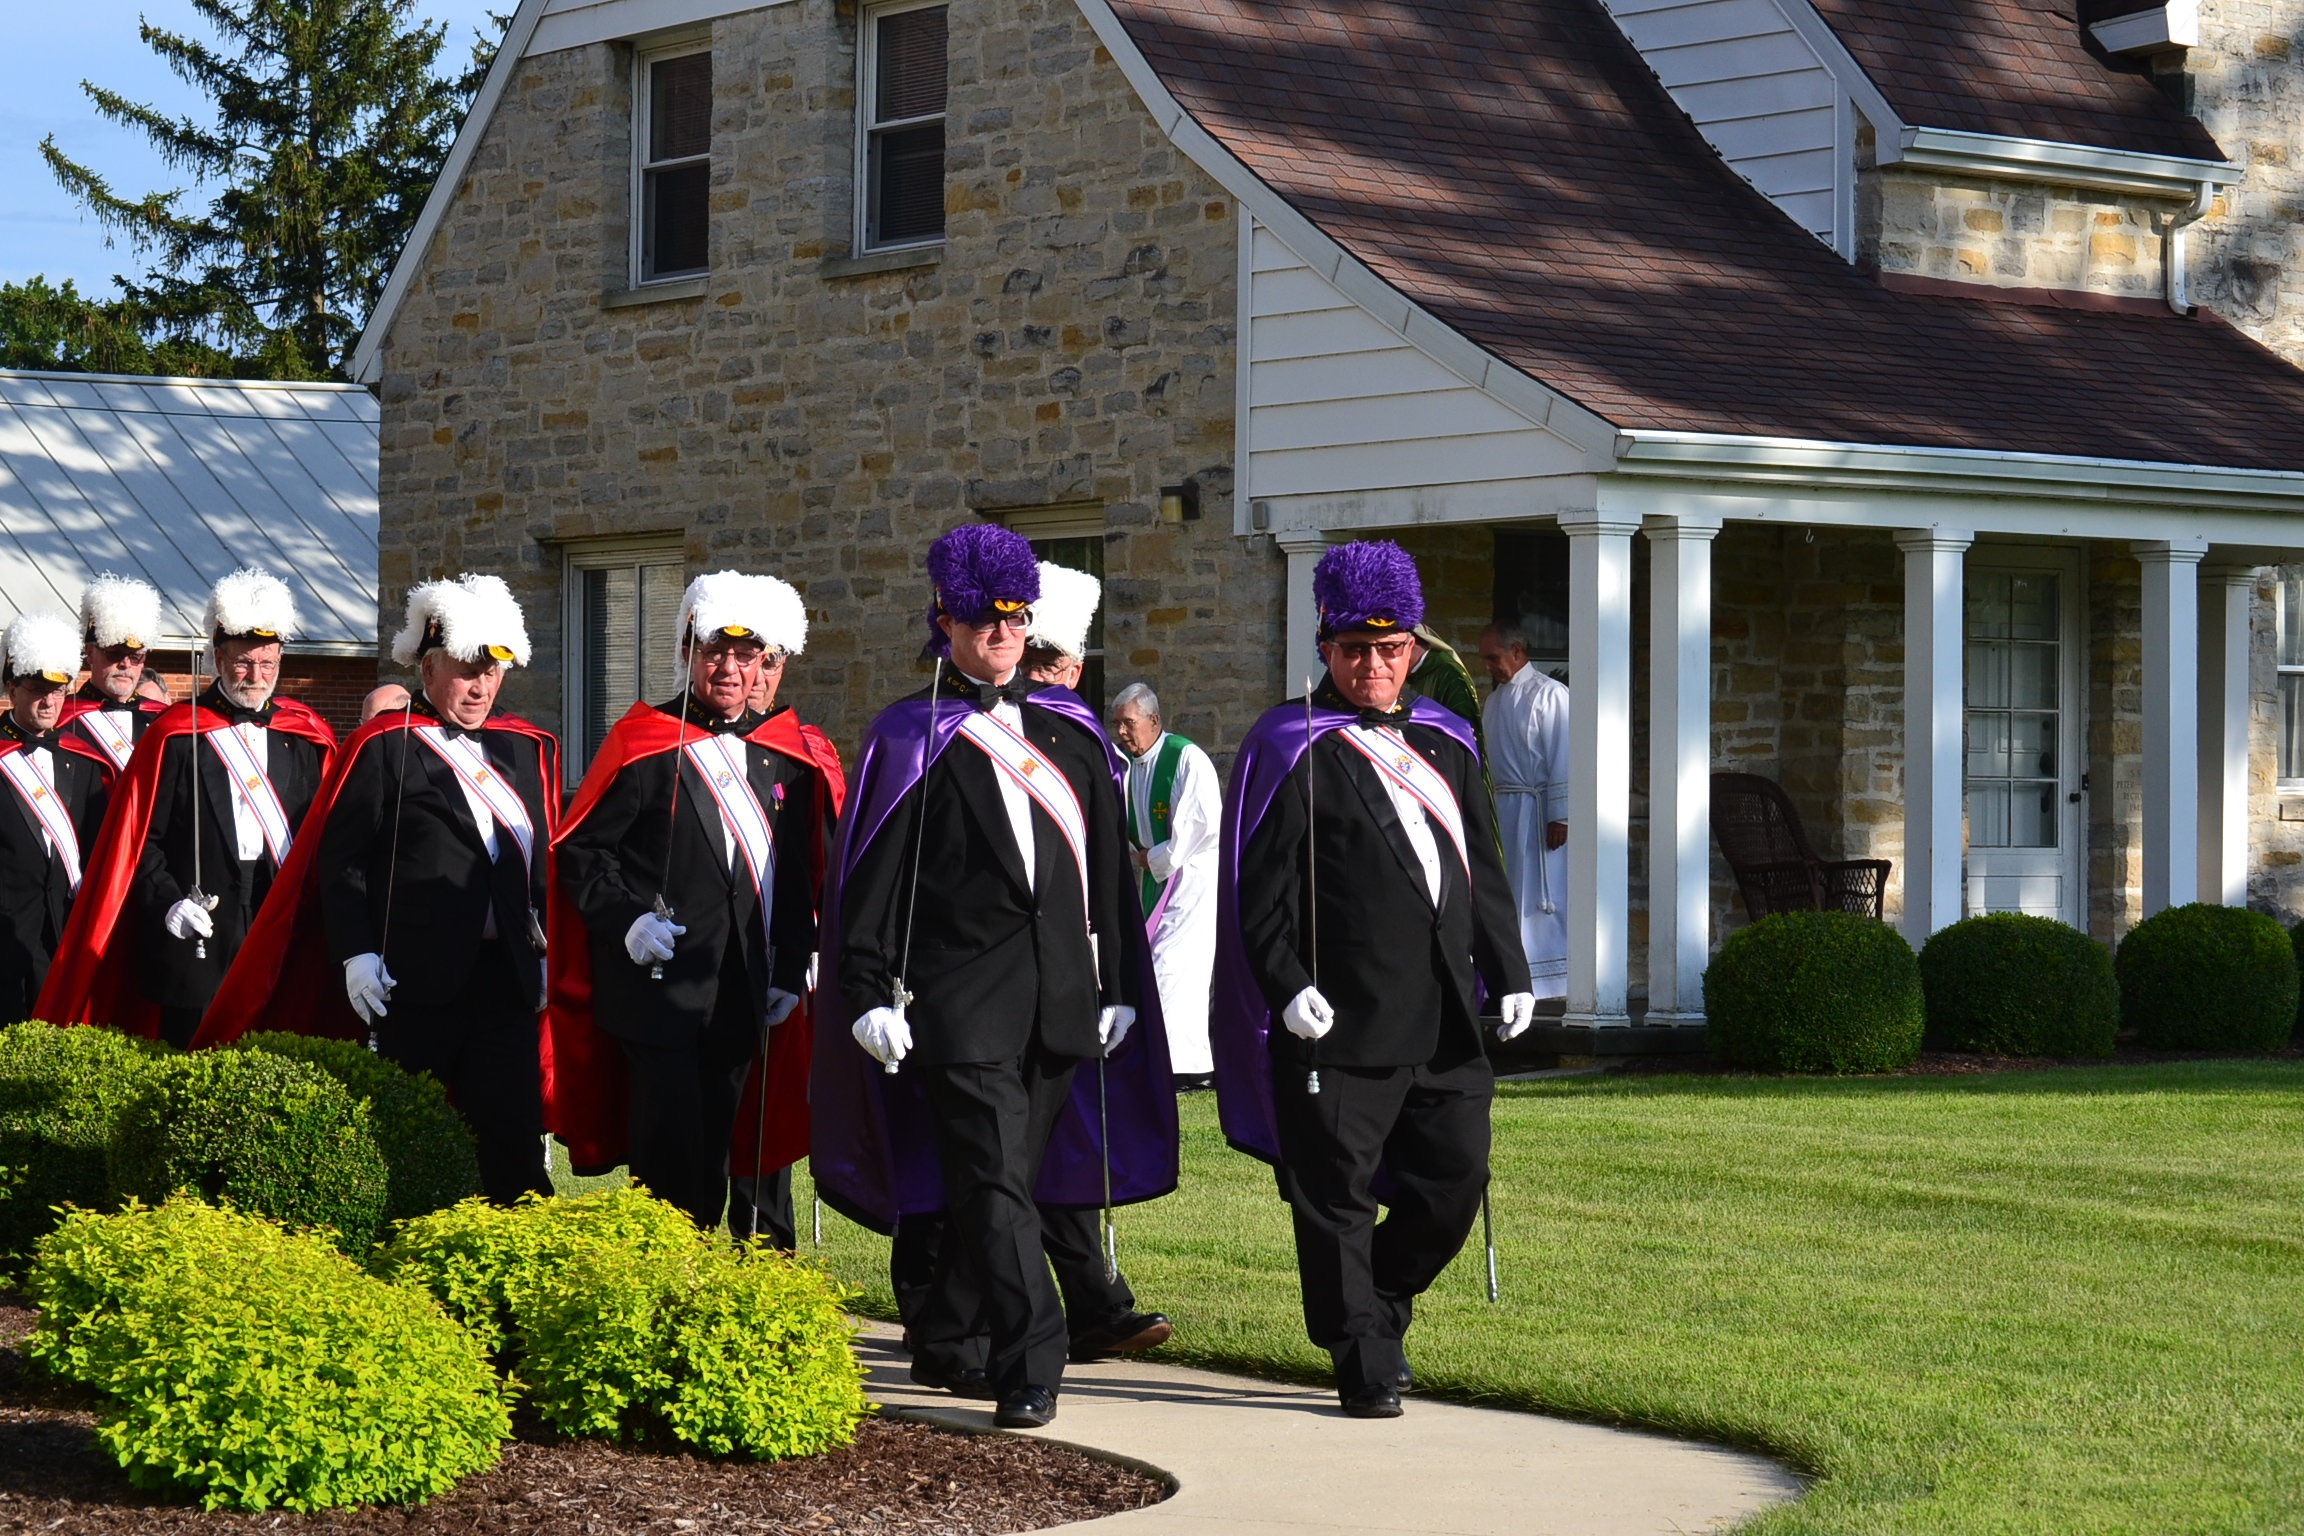 Knights of Columbus lead the procession for the Rural Farm Mass. (CT Photo/Greg Hartman)